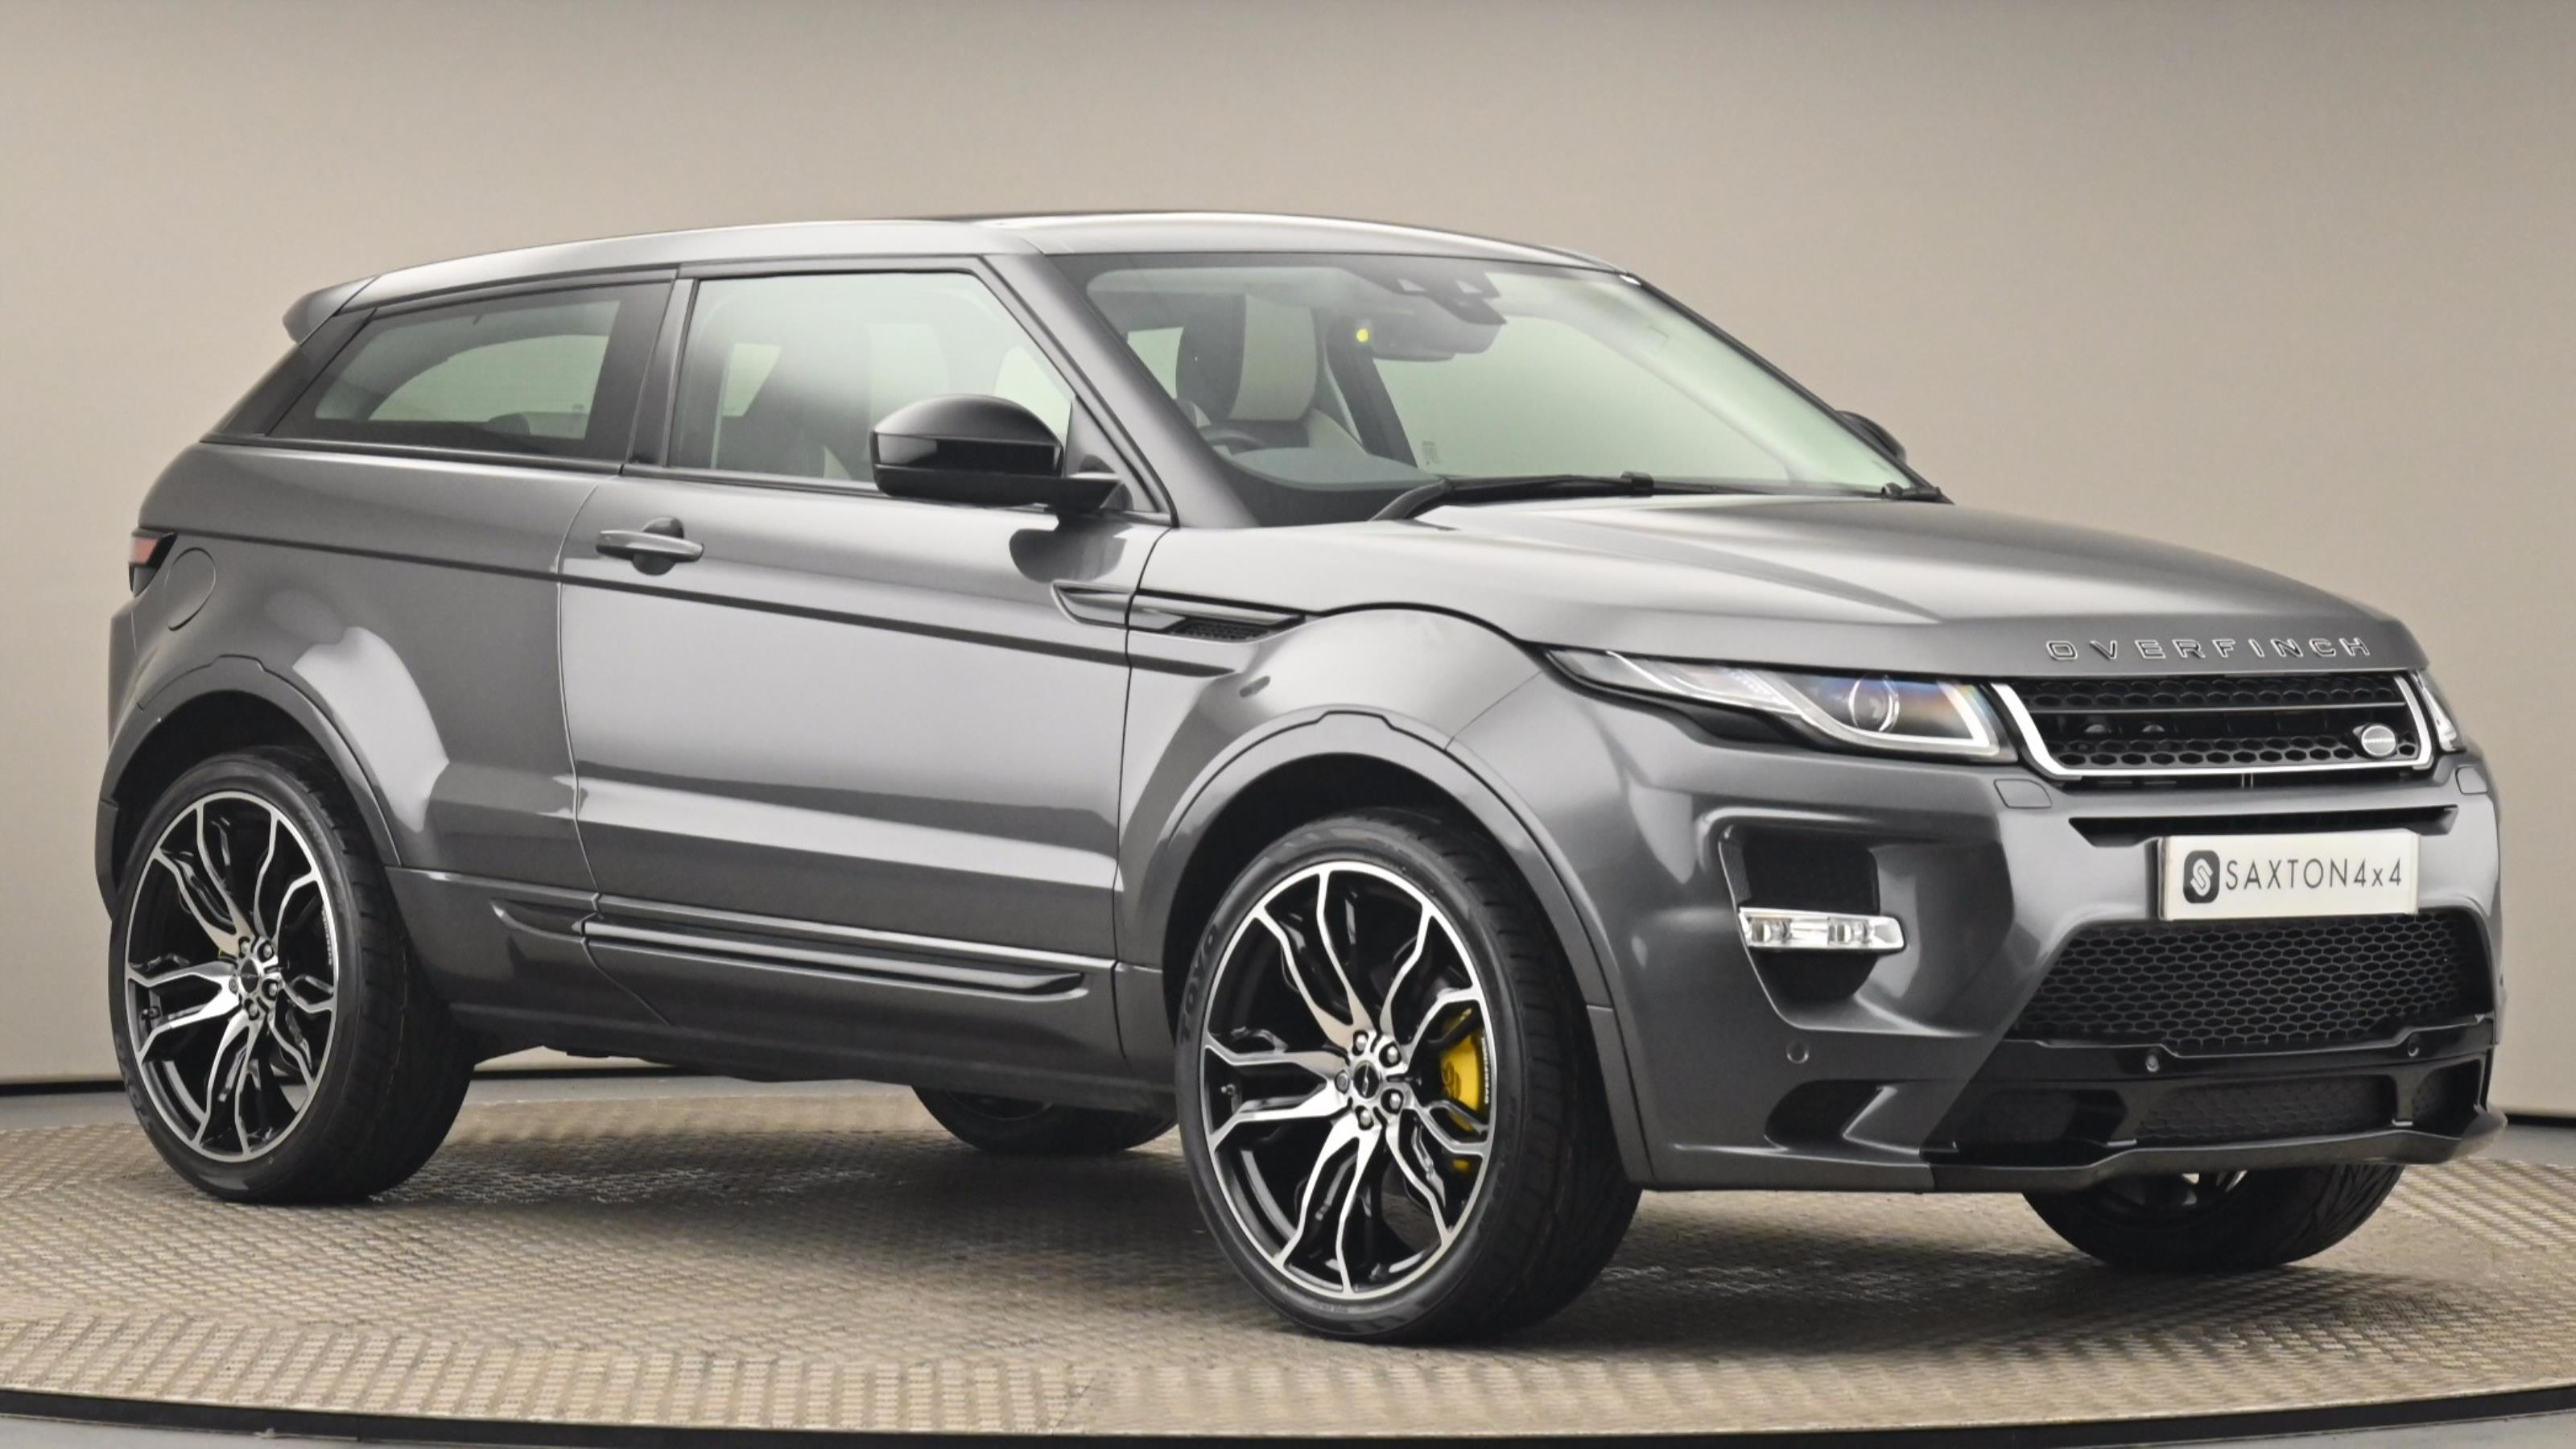 Used 2016 Land Rover RANGE ROVER EVOQUE 2.0 TD4 SE Tech 3dr Auto at Saxton4x4